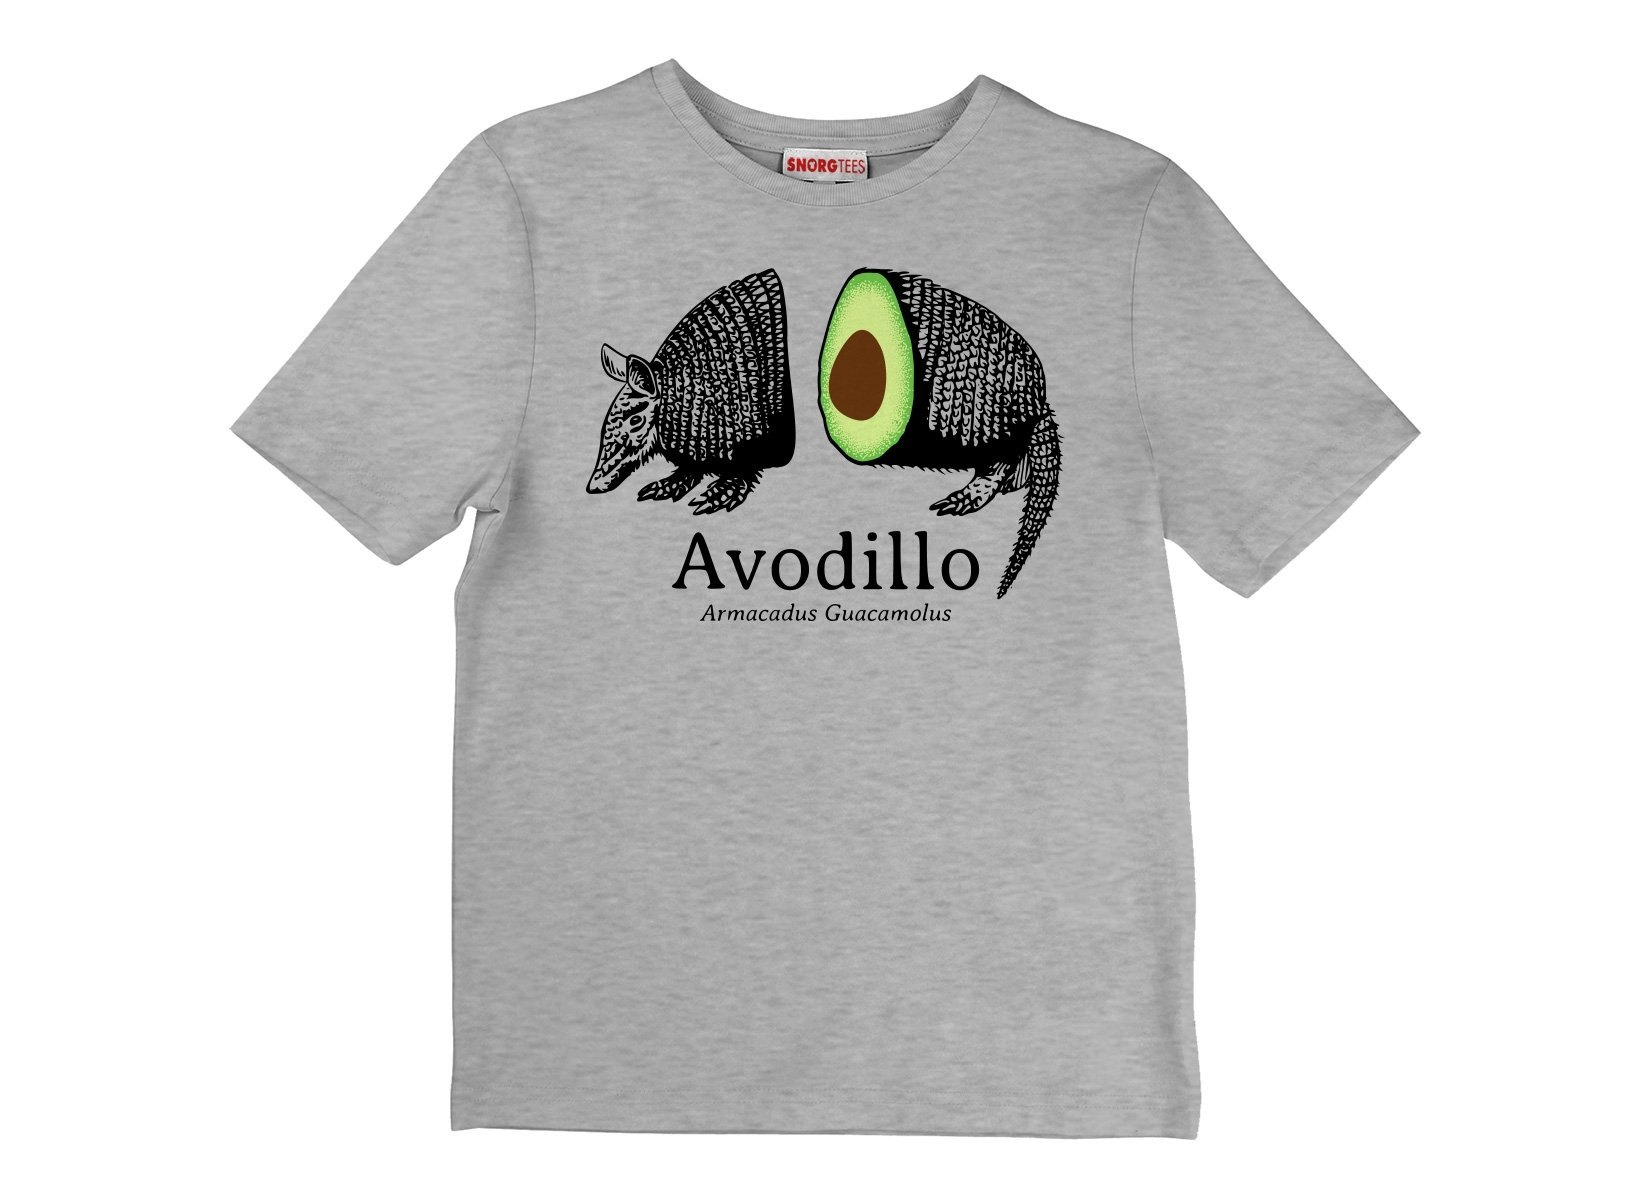 Avodillo on Kids T-Shirt